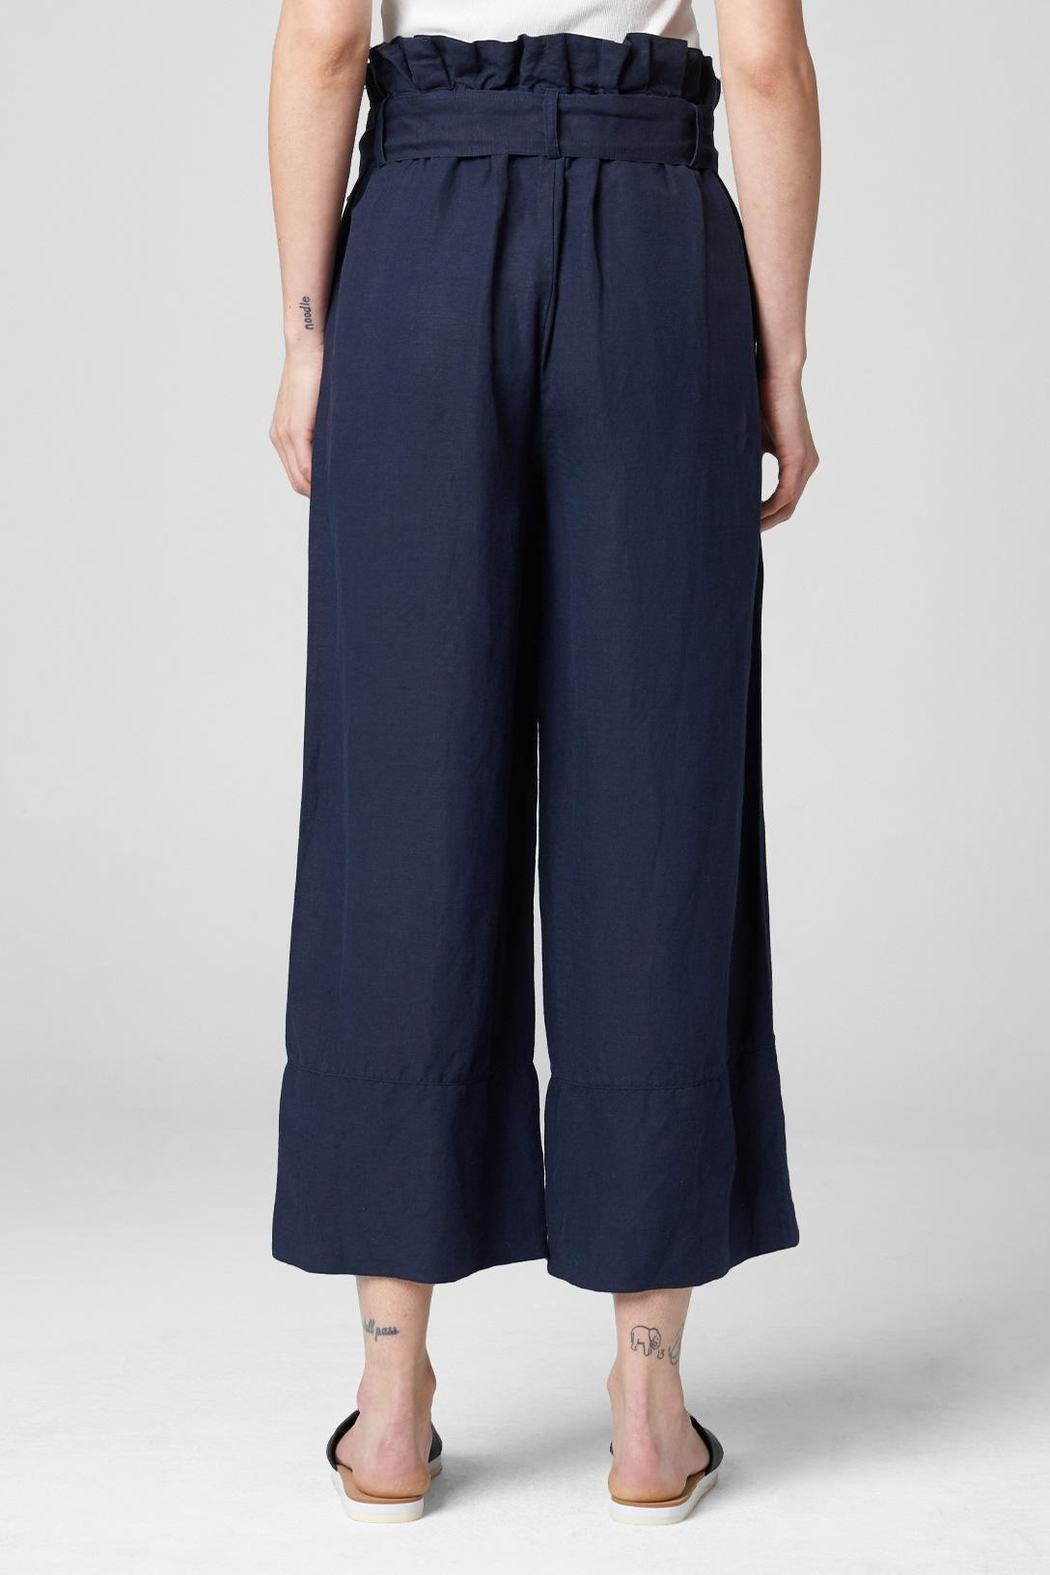 Blank NYC Navy Paperbag Pant - Back Cropped Image